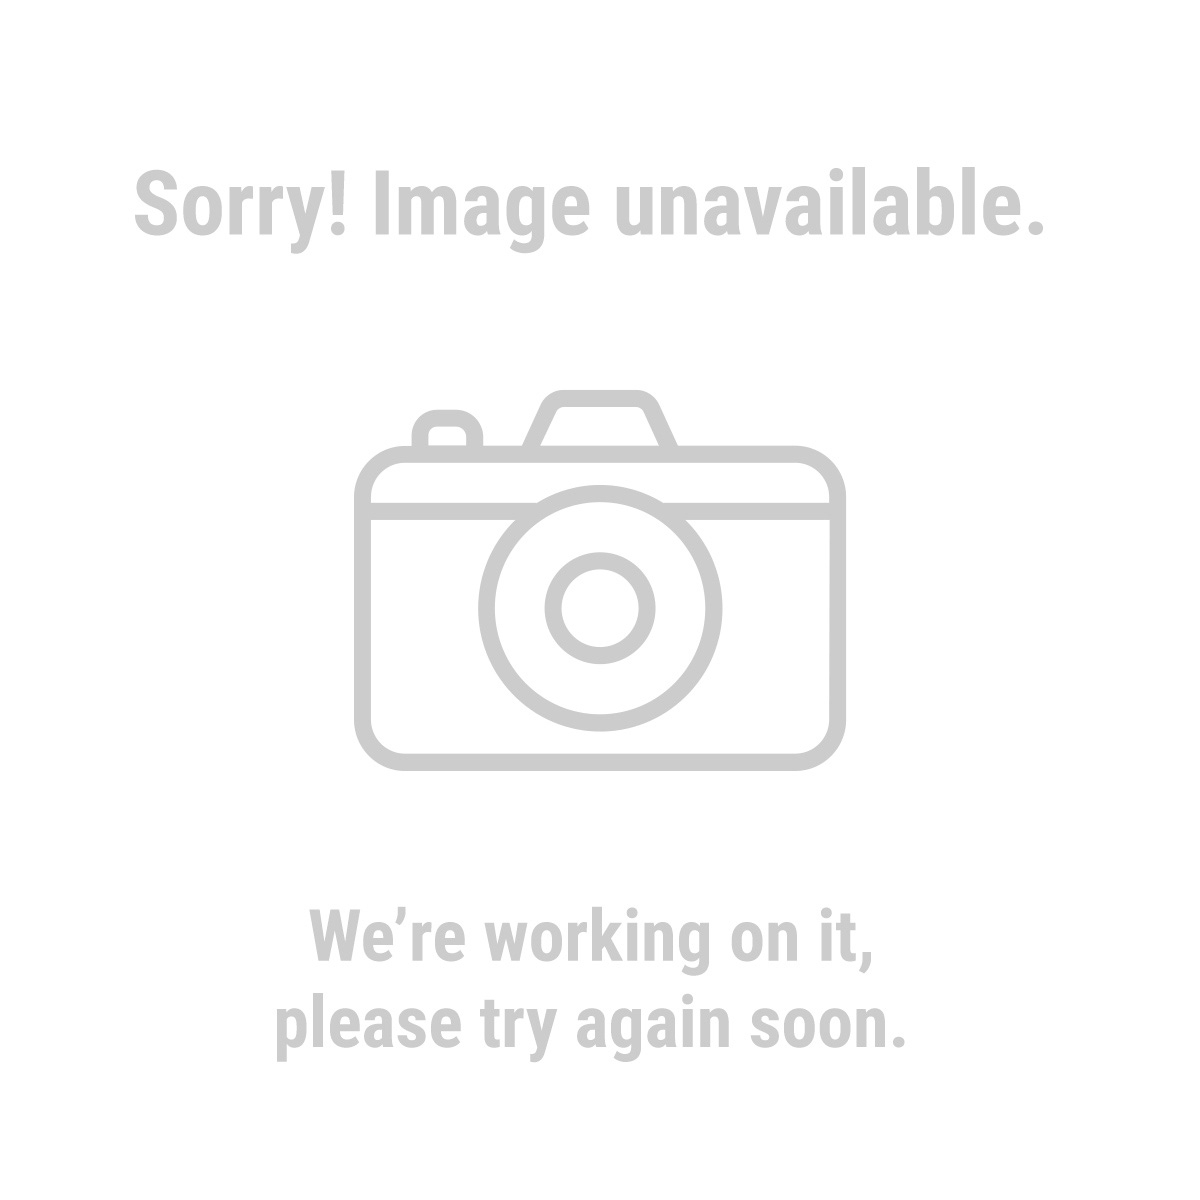 Chicago Electric Power Tools 97360 1-1/2 HP Bridge Tile Saw with Stand